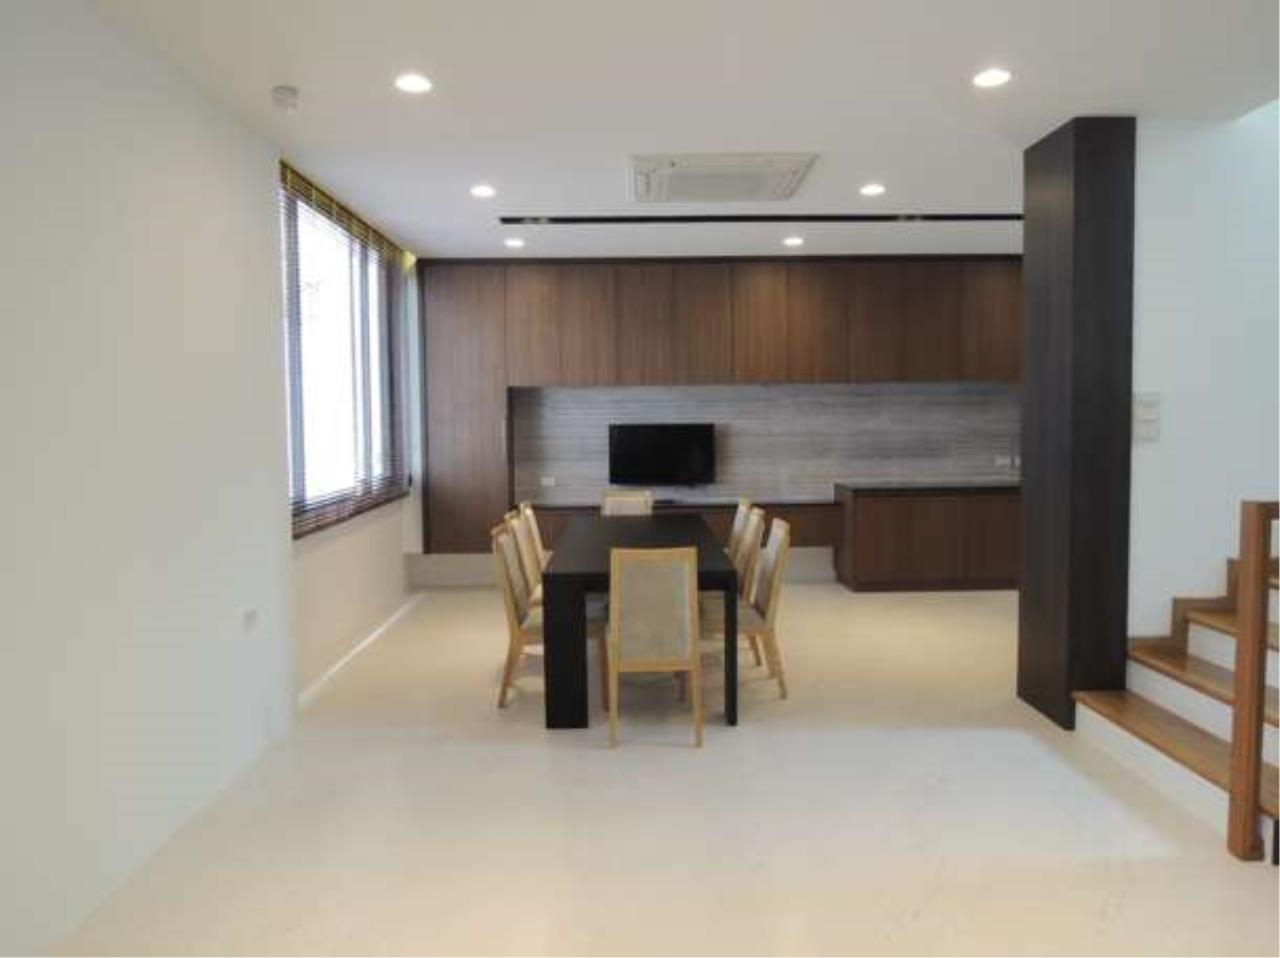 Right Move Thailand Agency's HR423 House For Sale  60,000,000 THB  - 4 Bedrooms - 315 sqm. 2